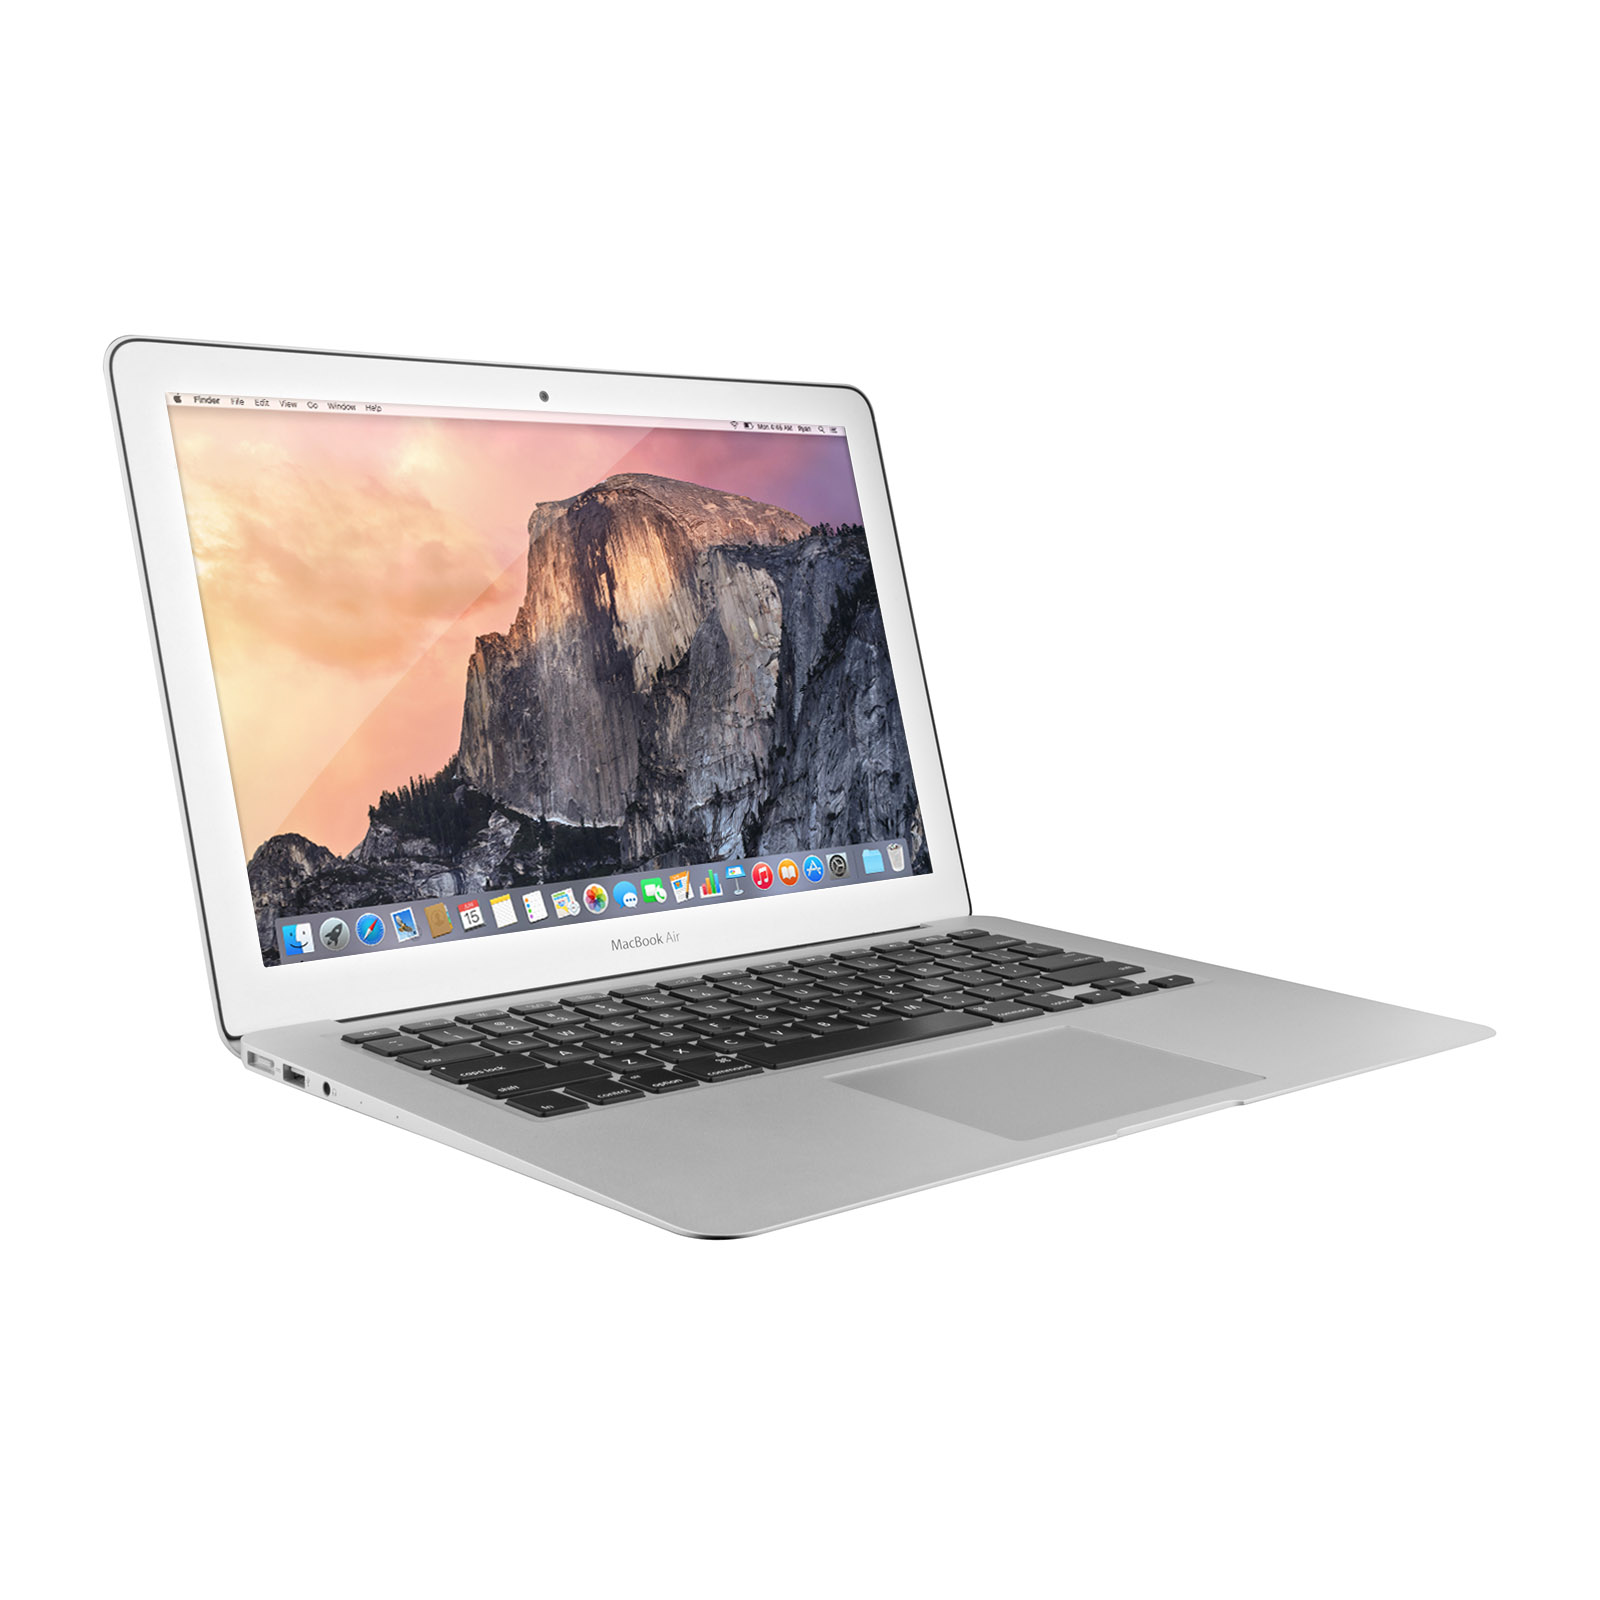 "Apple MacBook Air 13.3"" Laptop (MD760LLB) Gray"